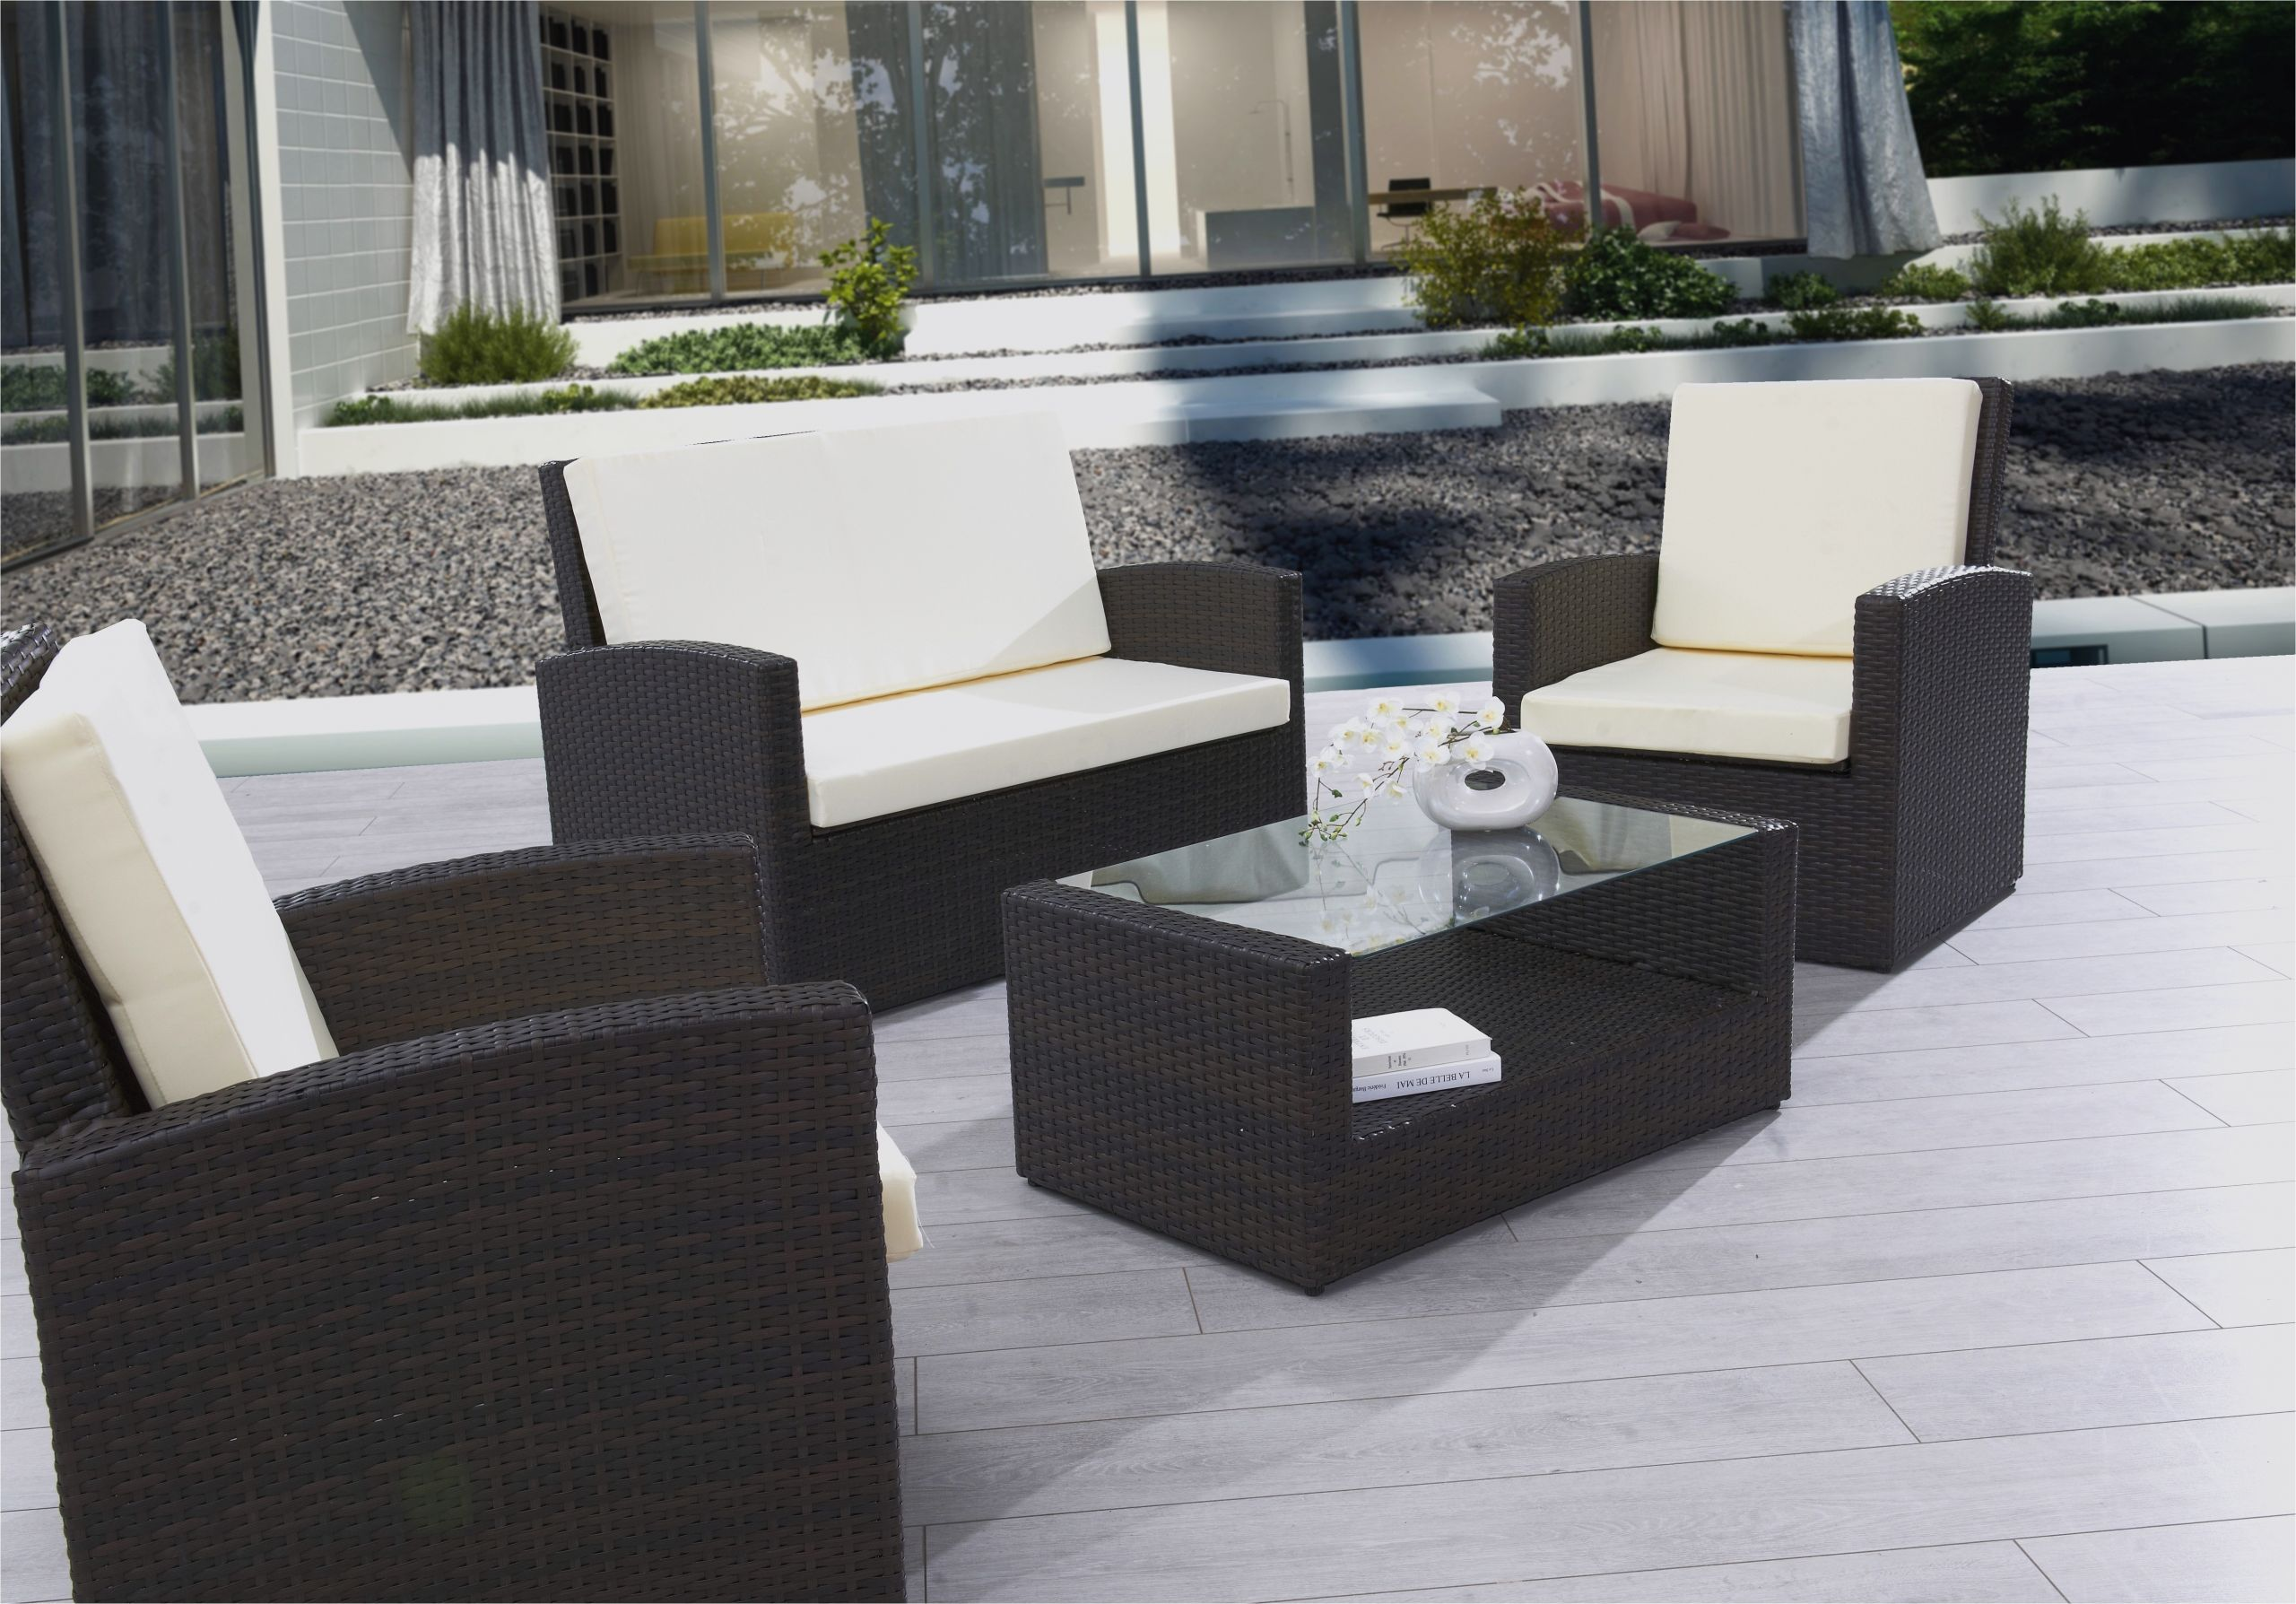 Salon Jardin En Resine Beau Awesome Salon De Jardin Resine Centre Leclerc Ideas House Of 23 Luxe Salon Jardin En Resine